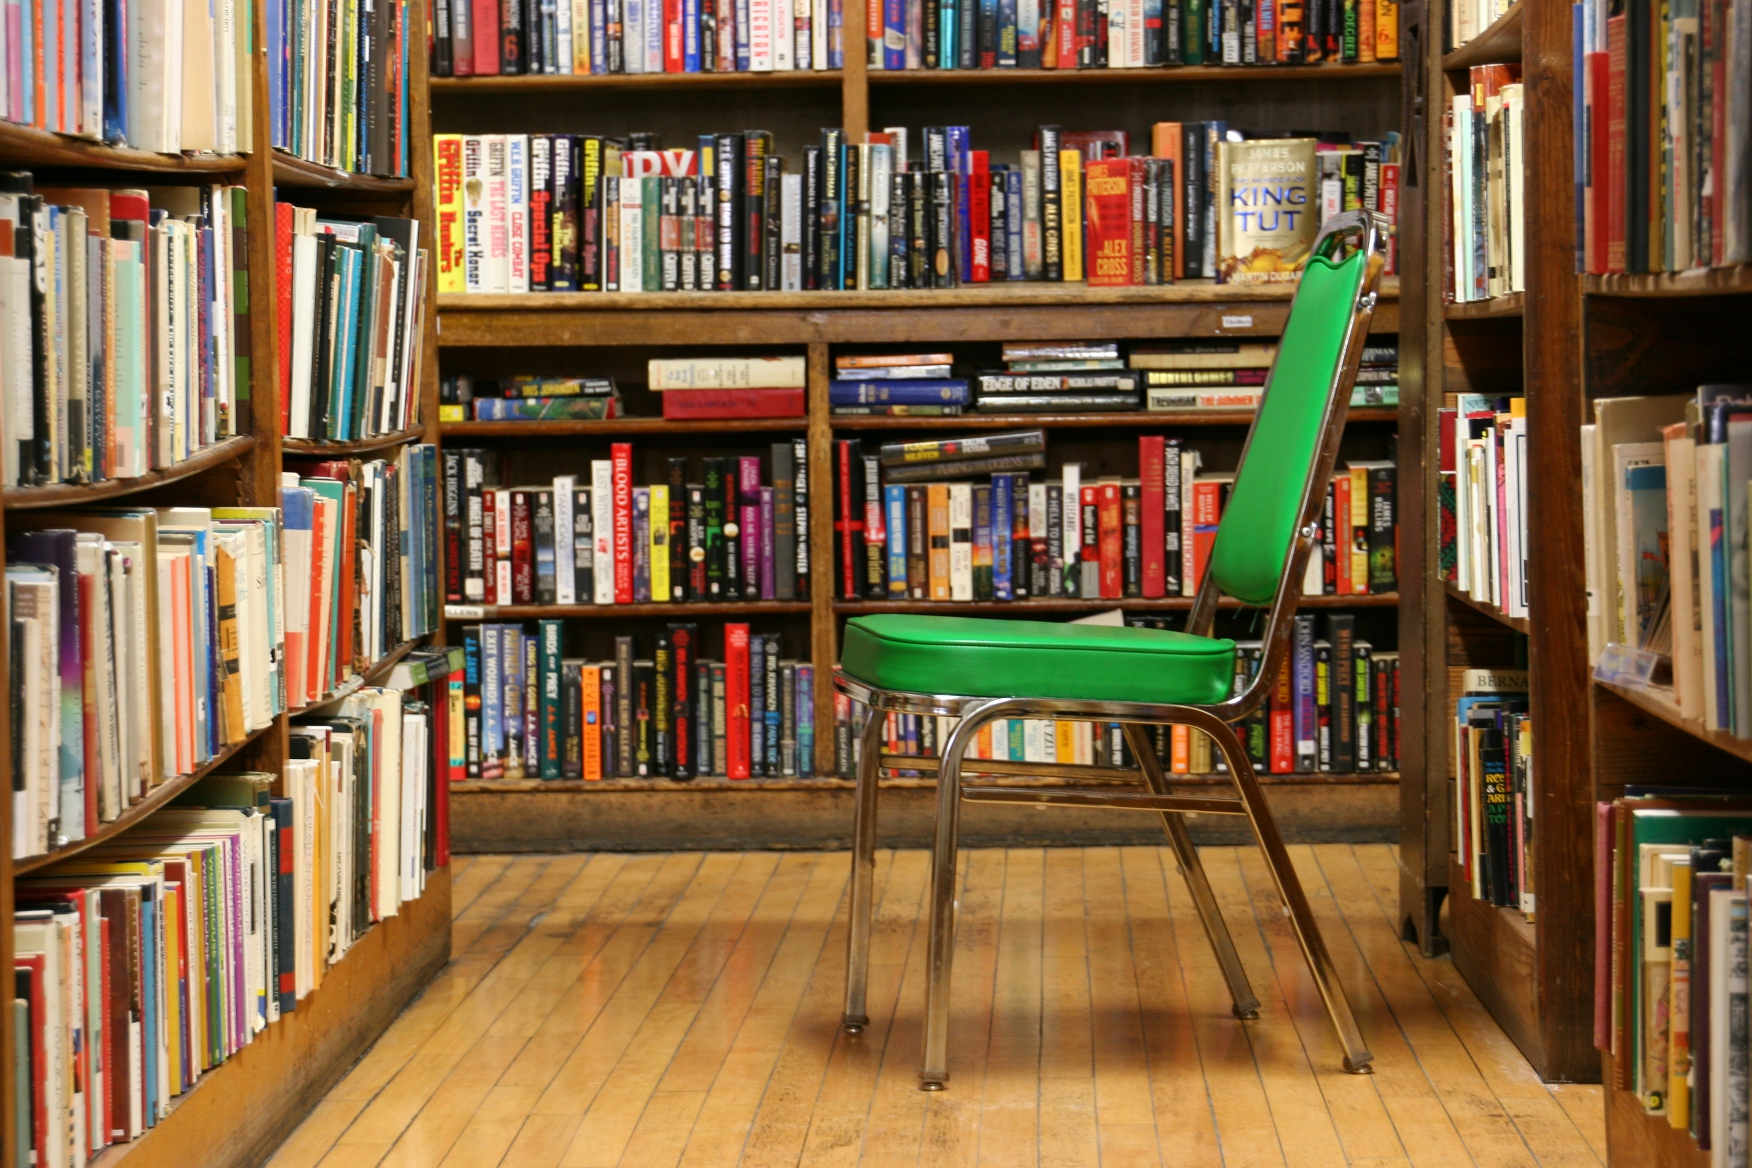 Swell Bookstore 74 Green Chair Among Bookshelves Minnesota Download Free Architecture Designs Embacsunscenecom